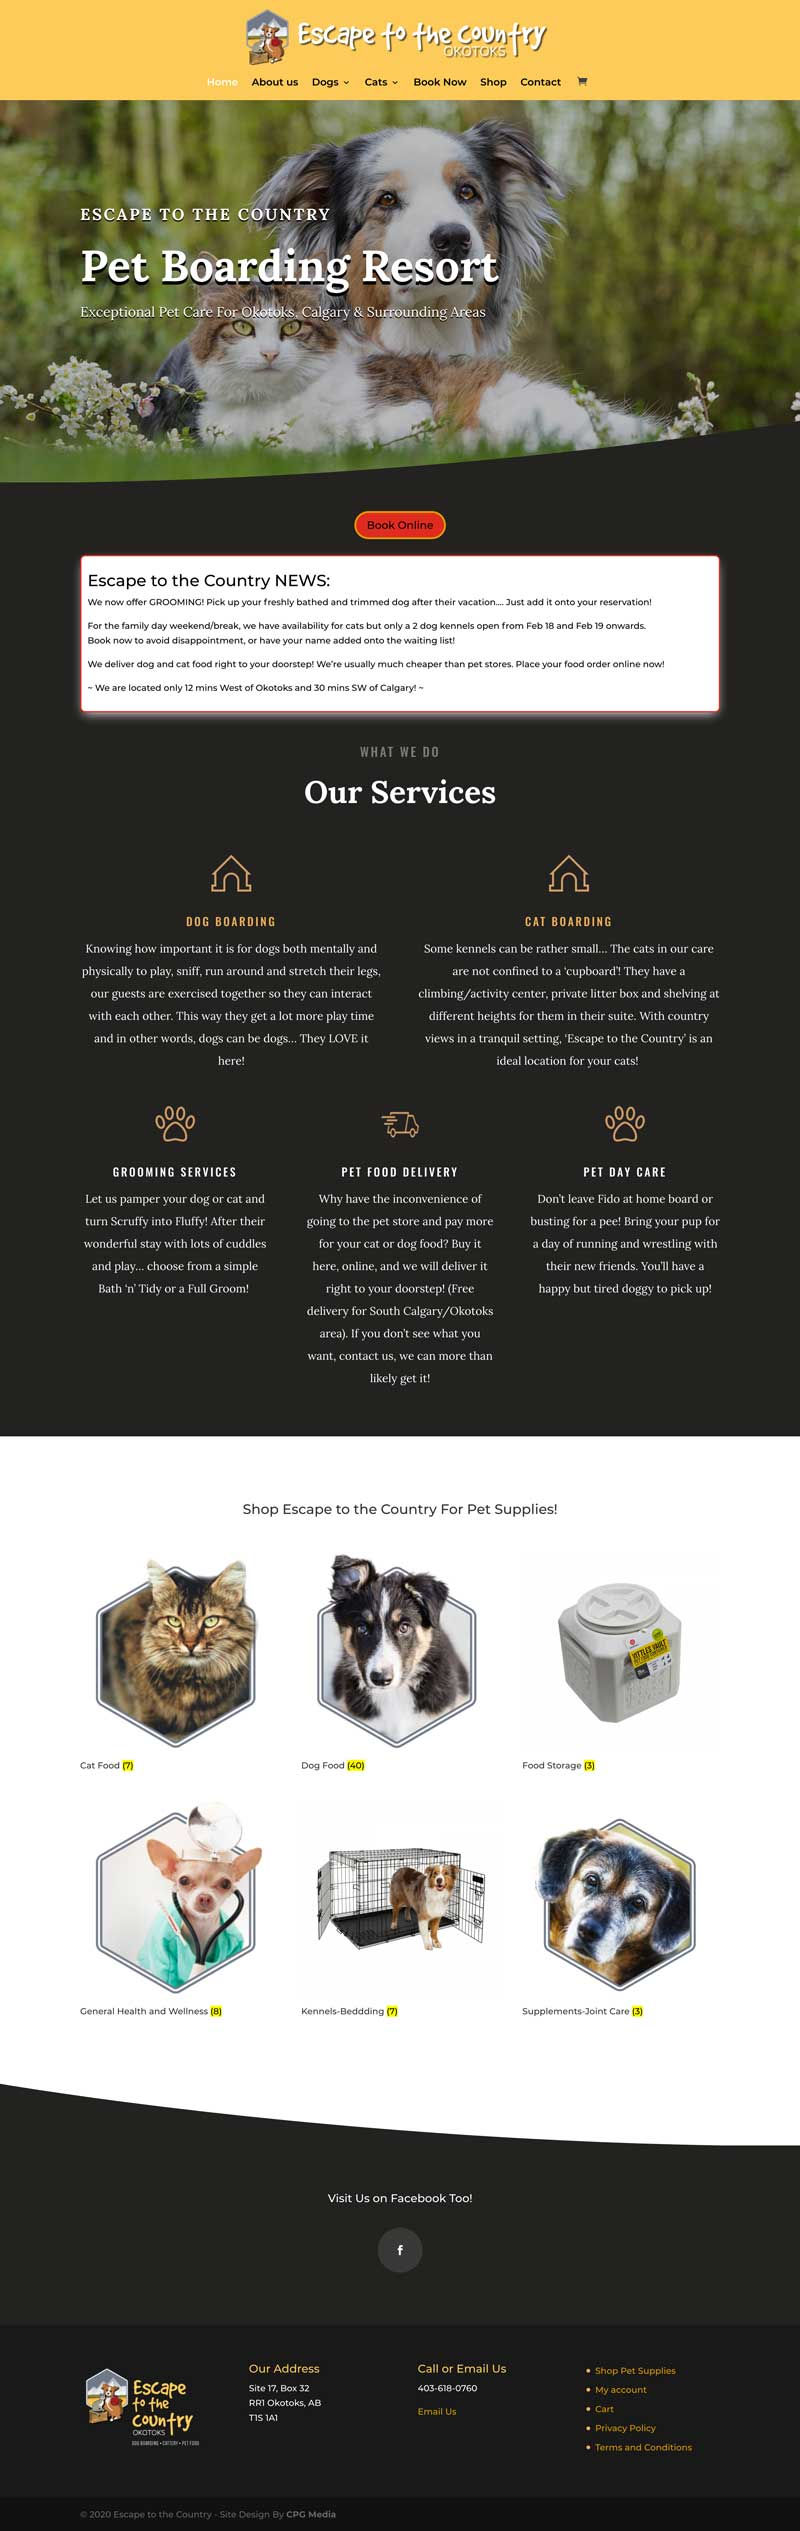 Escape To The Country Pet Boarding - CPG Web Design